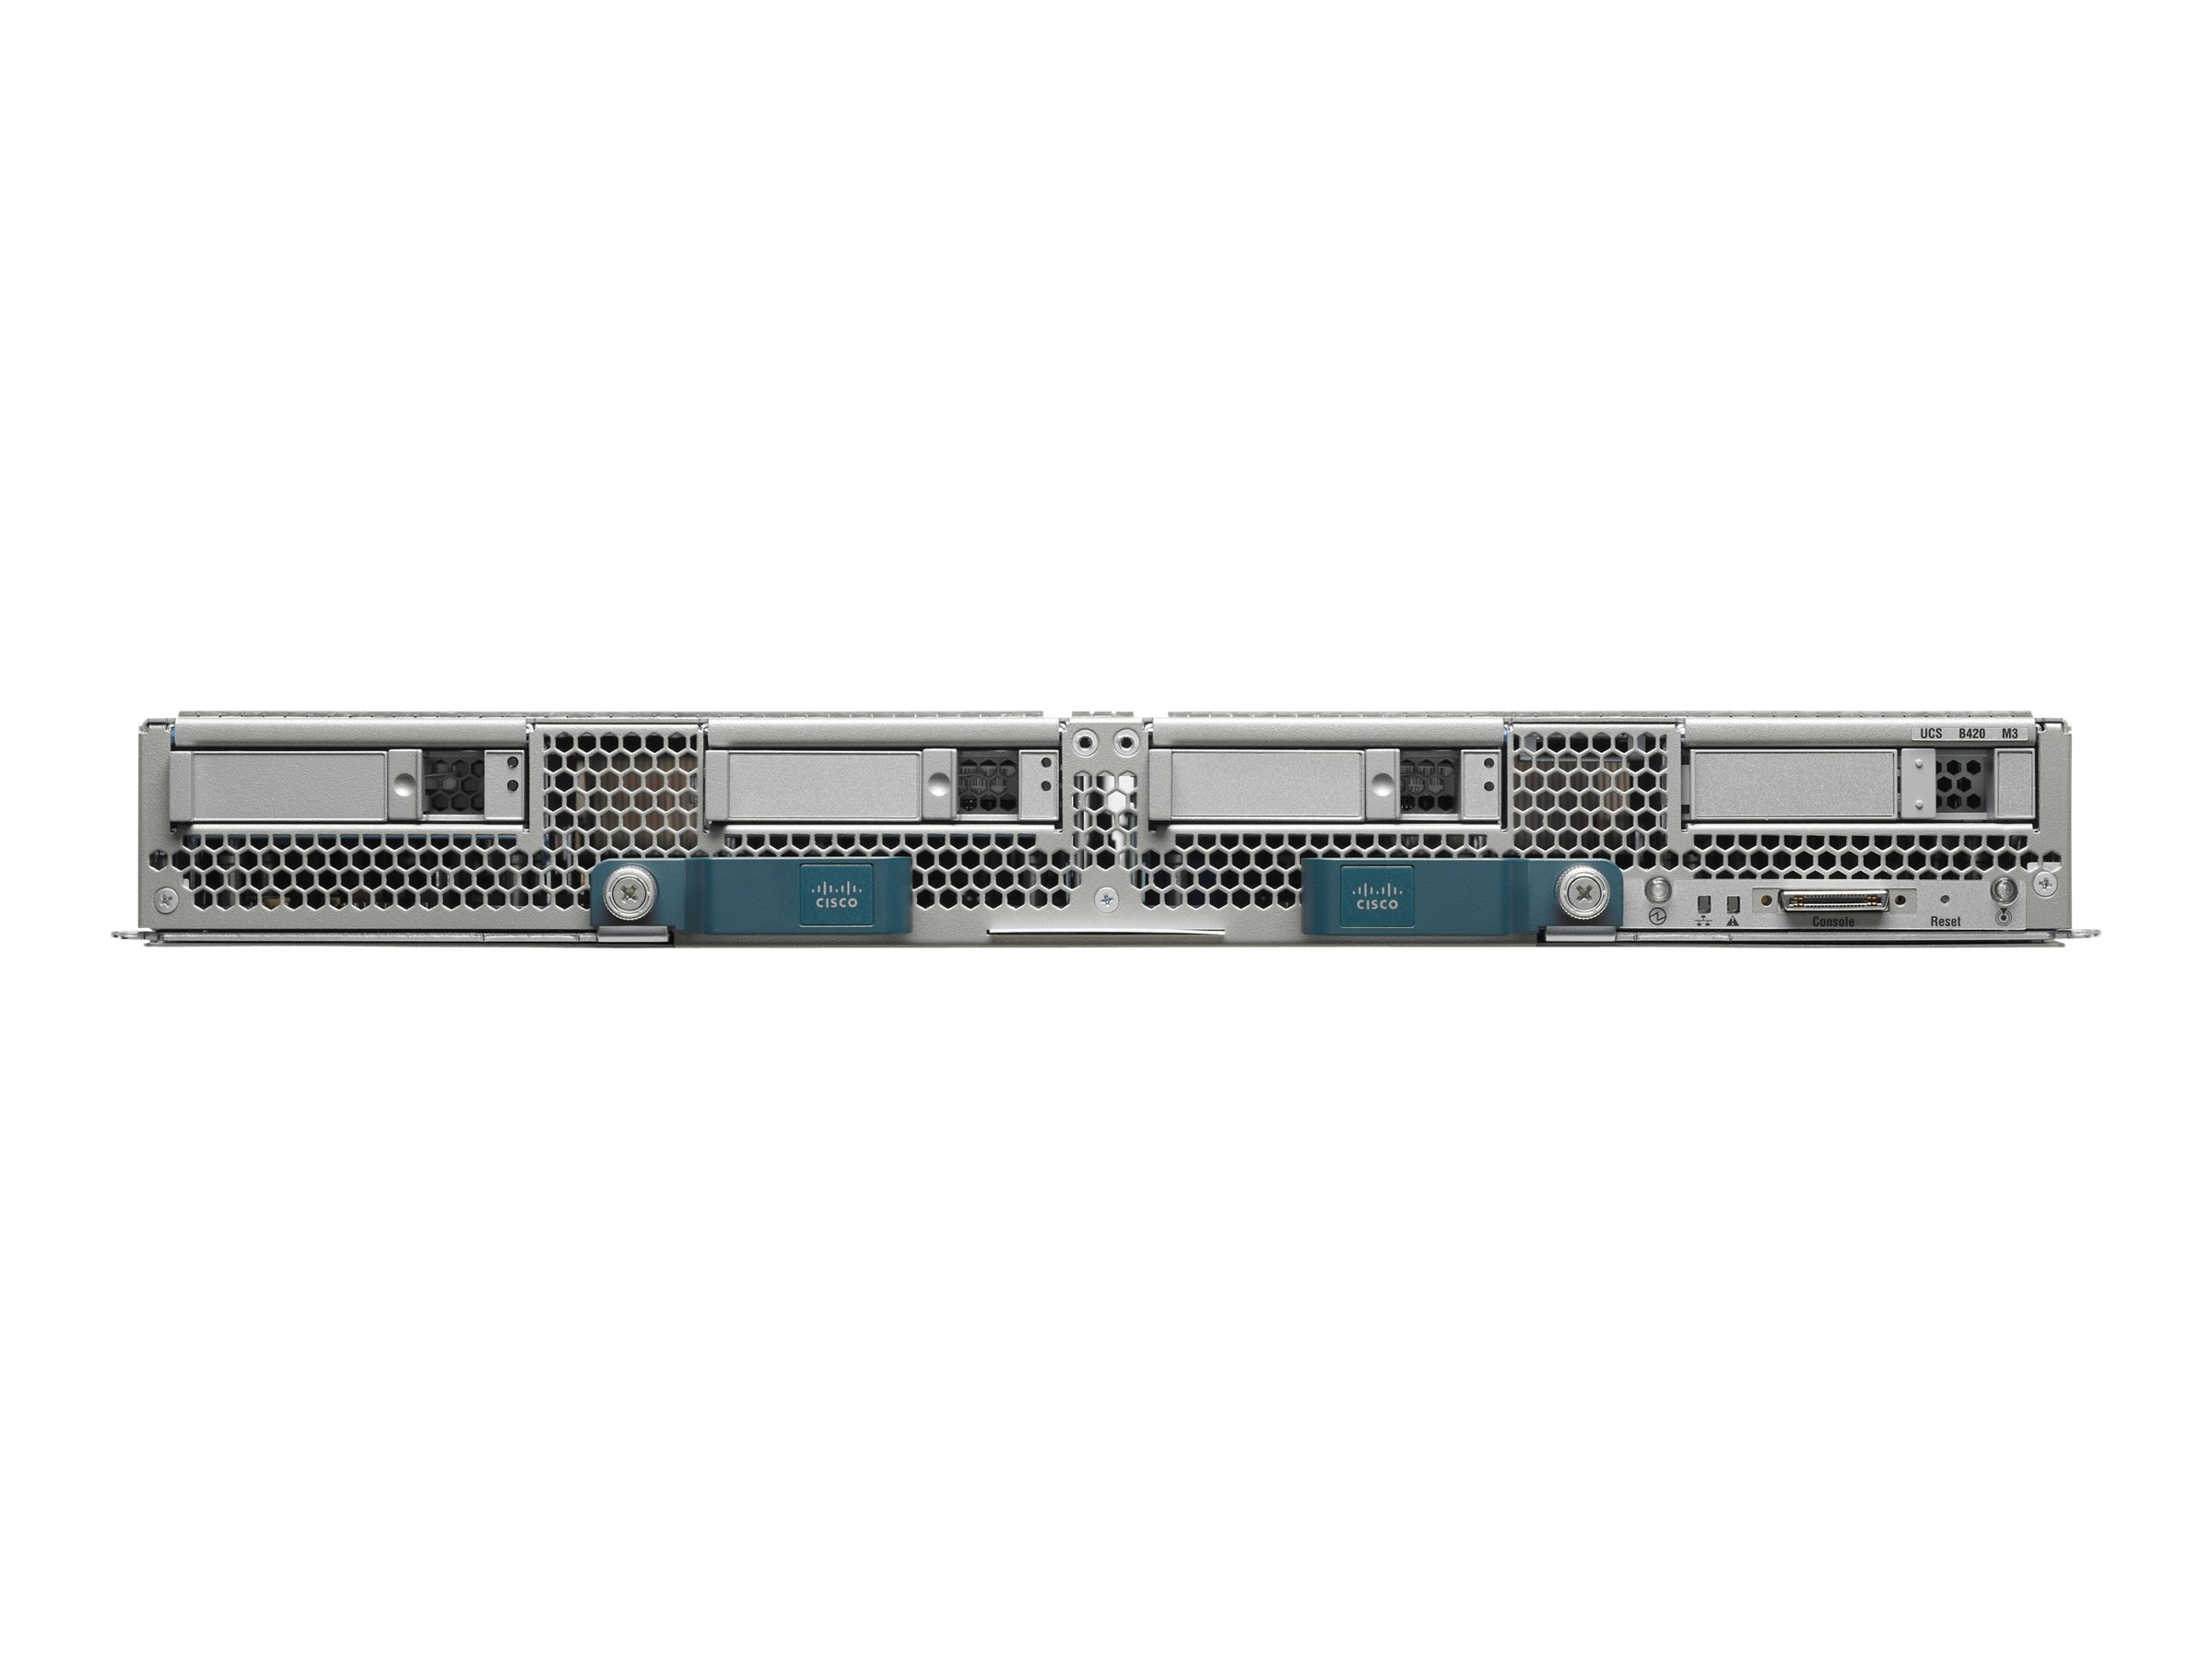 Cisco UCS B420 M3 Blade Server No CPU, Memory, HD